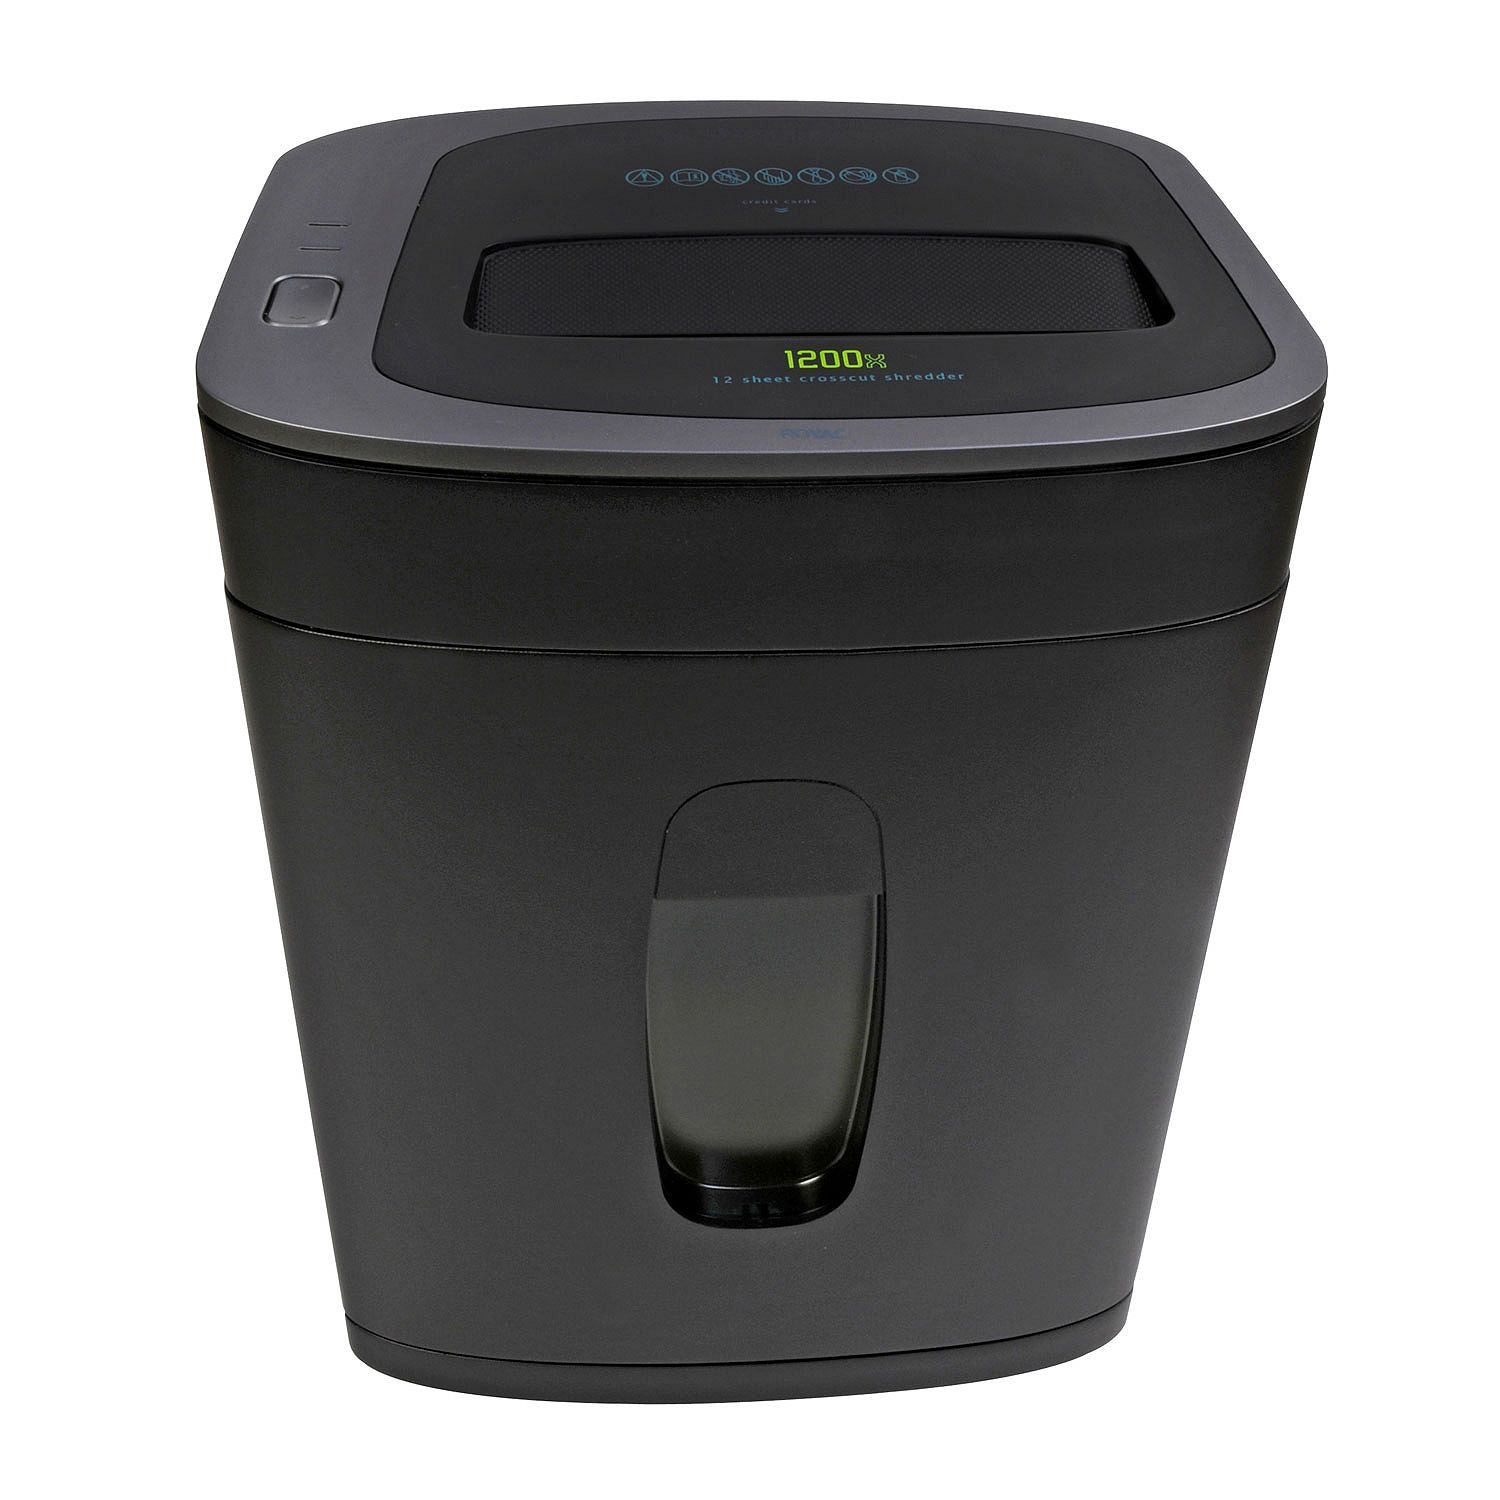 Royal 1200X Paper Shredder, 12 Sheet Capacity  FLW32575